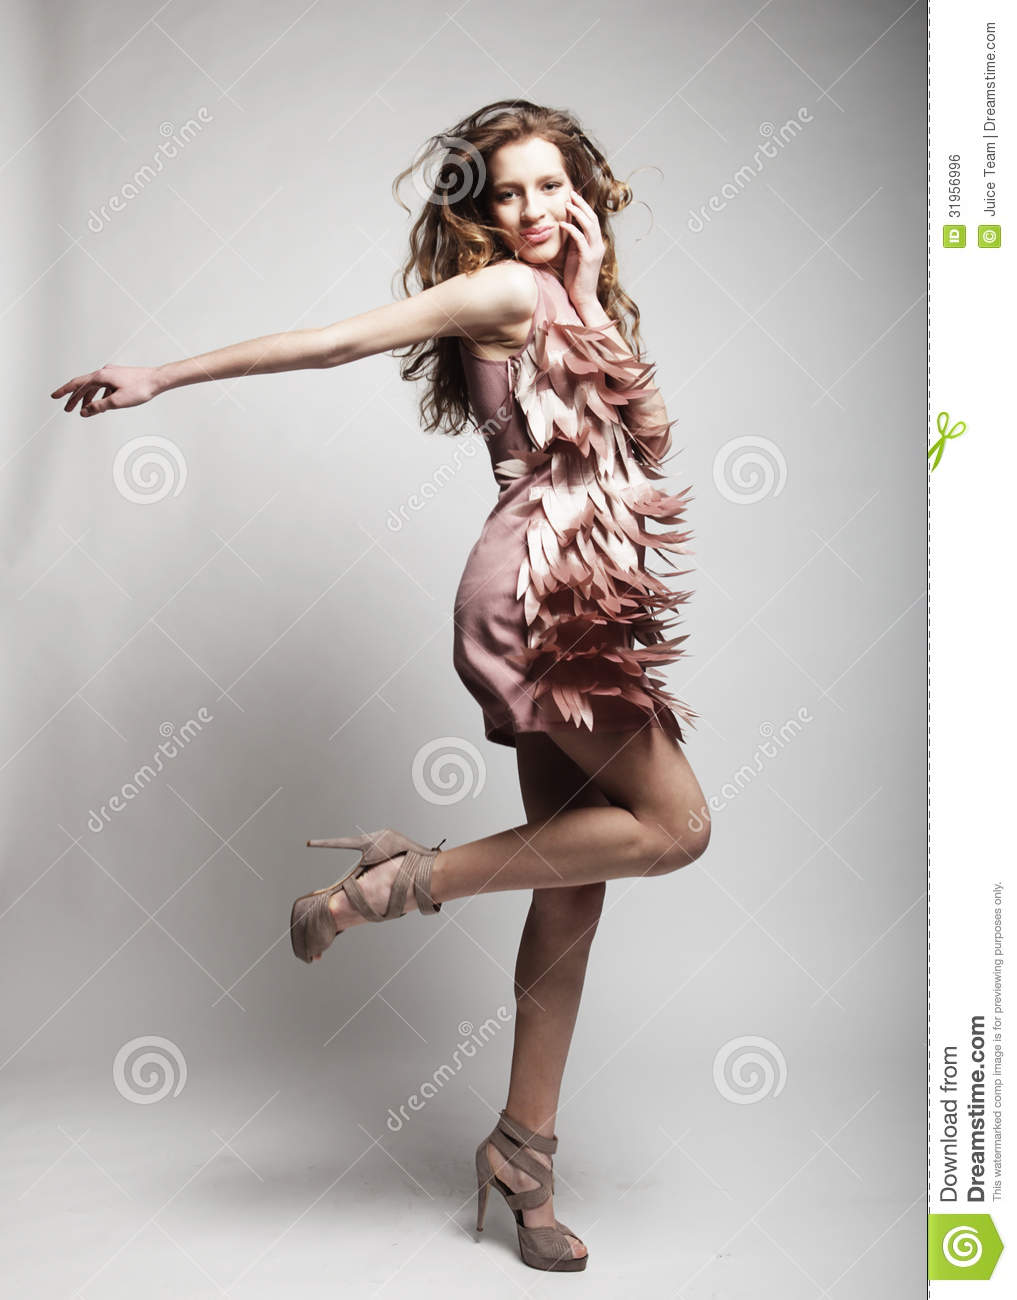 High end fashion model with curly hair royalty free stock image